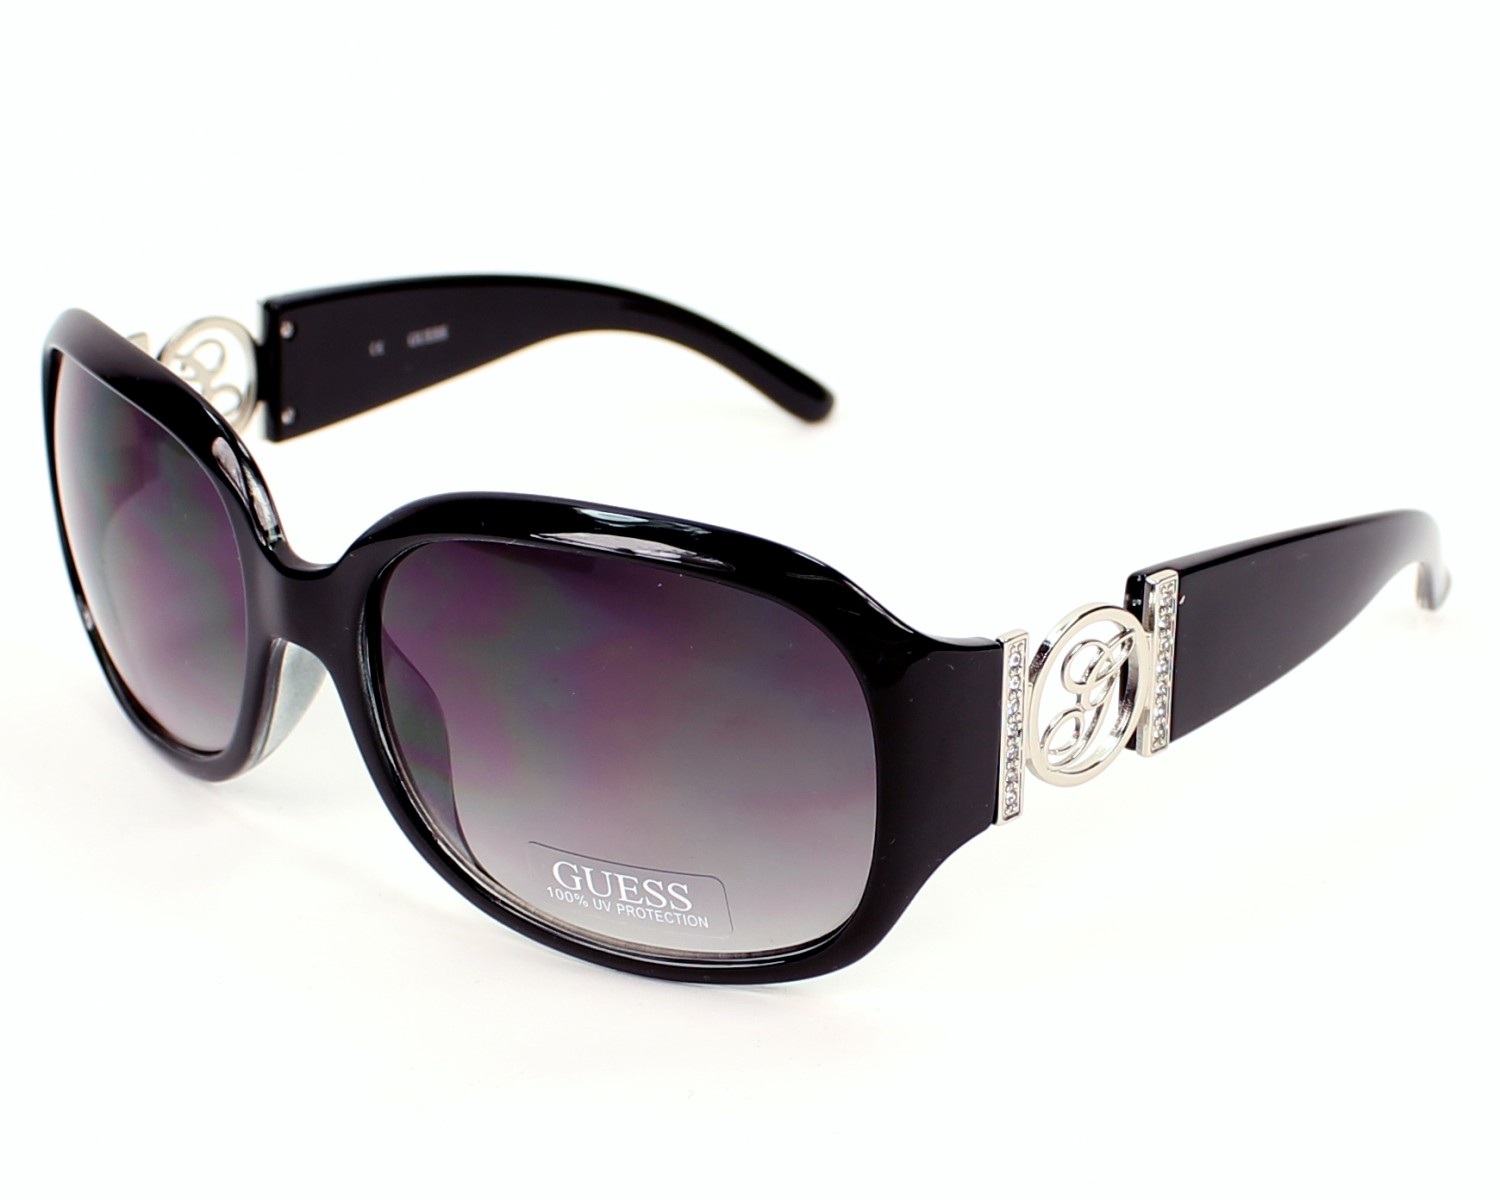 Guess Sunglasses Black With Grey Lenses Gu 7005 Blk 35 Visionet Us